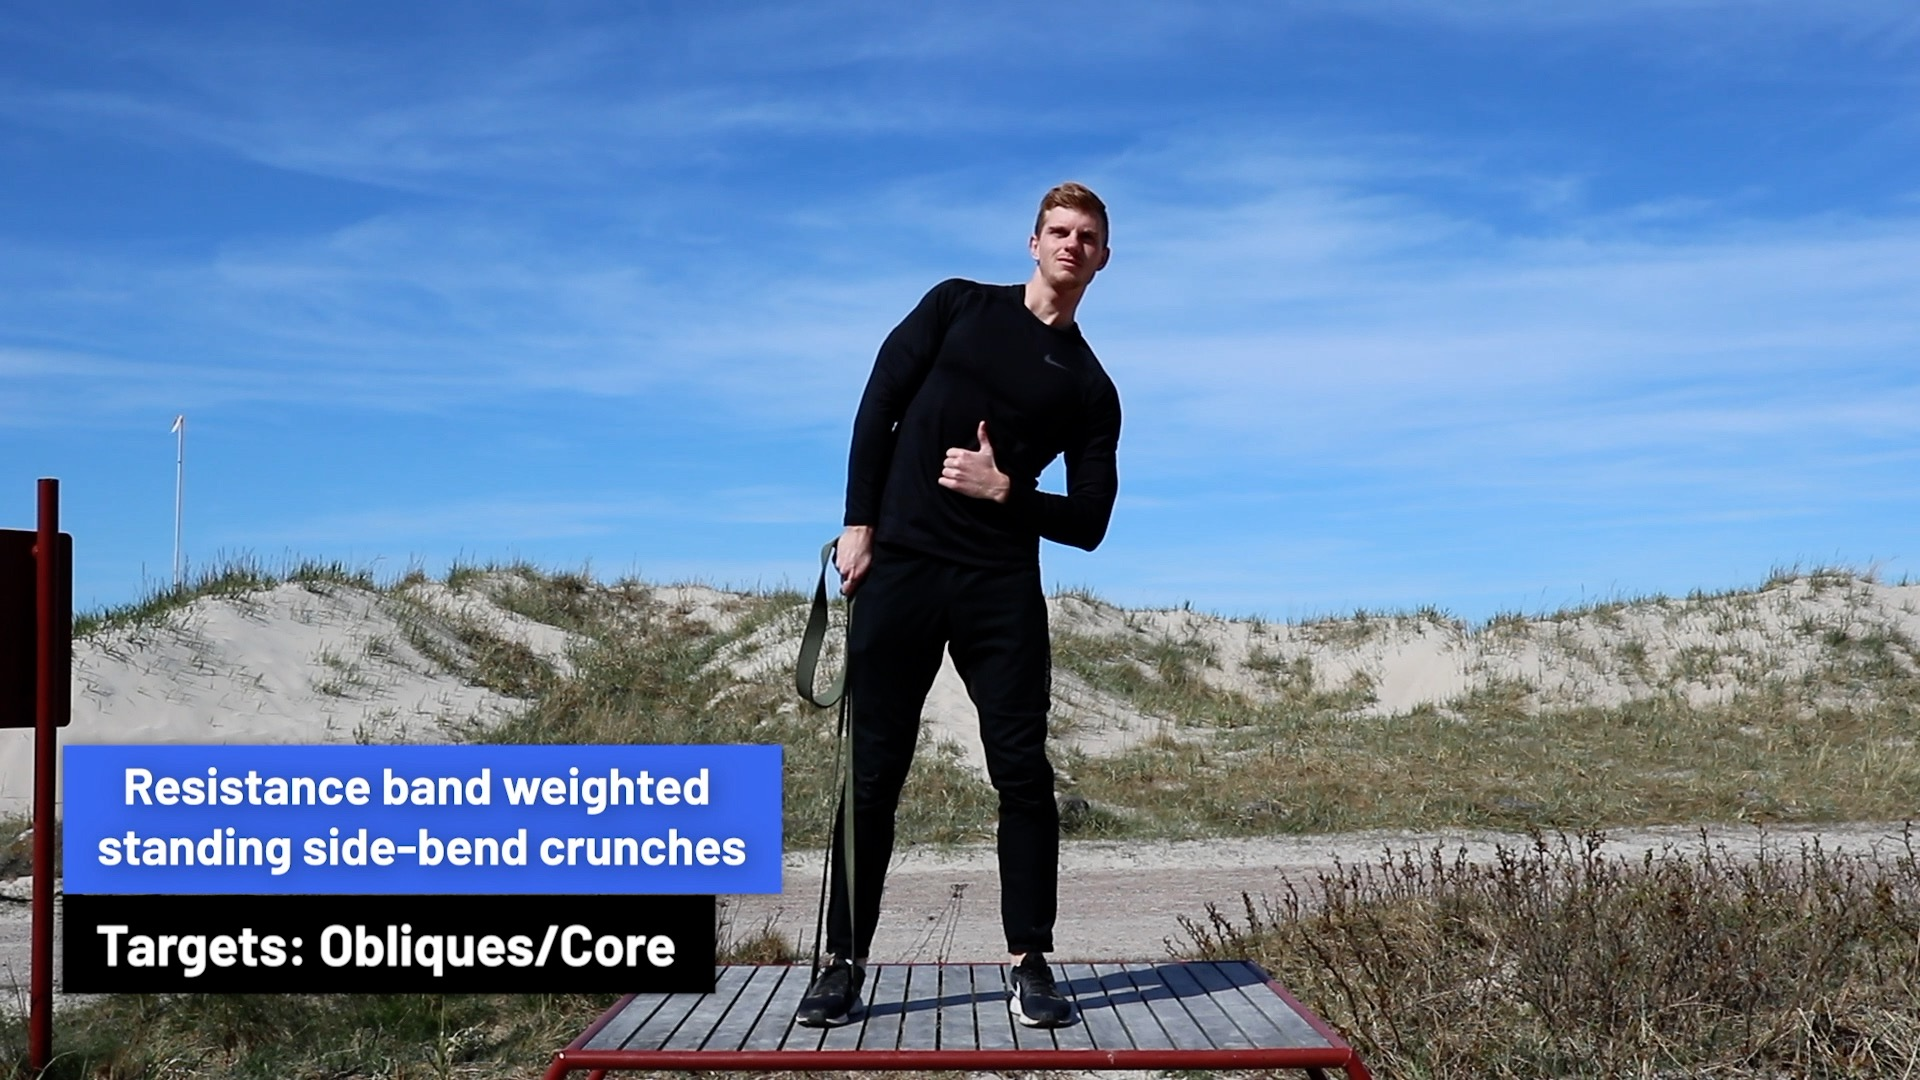 Resistance band weighted standing sinde-bend crunches